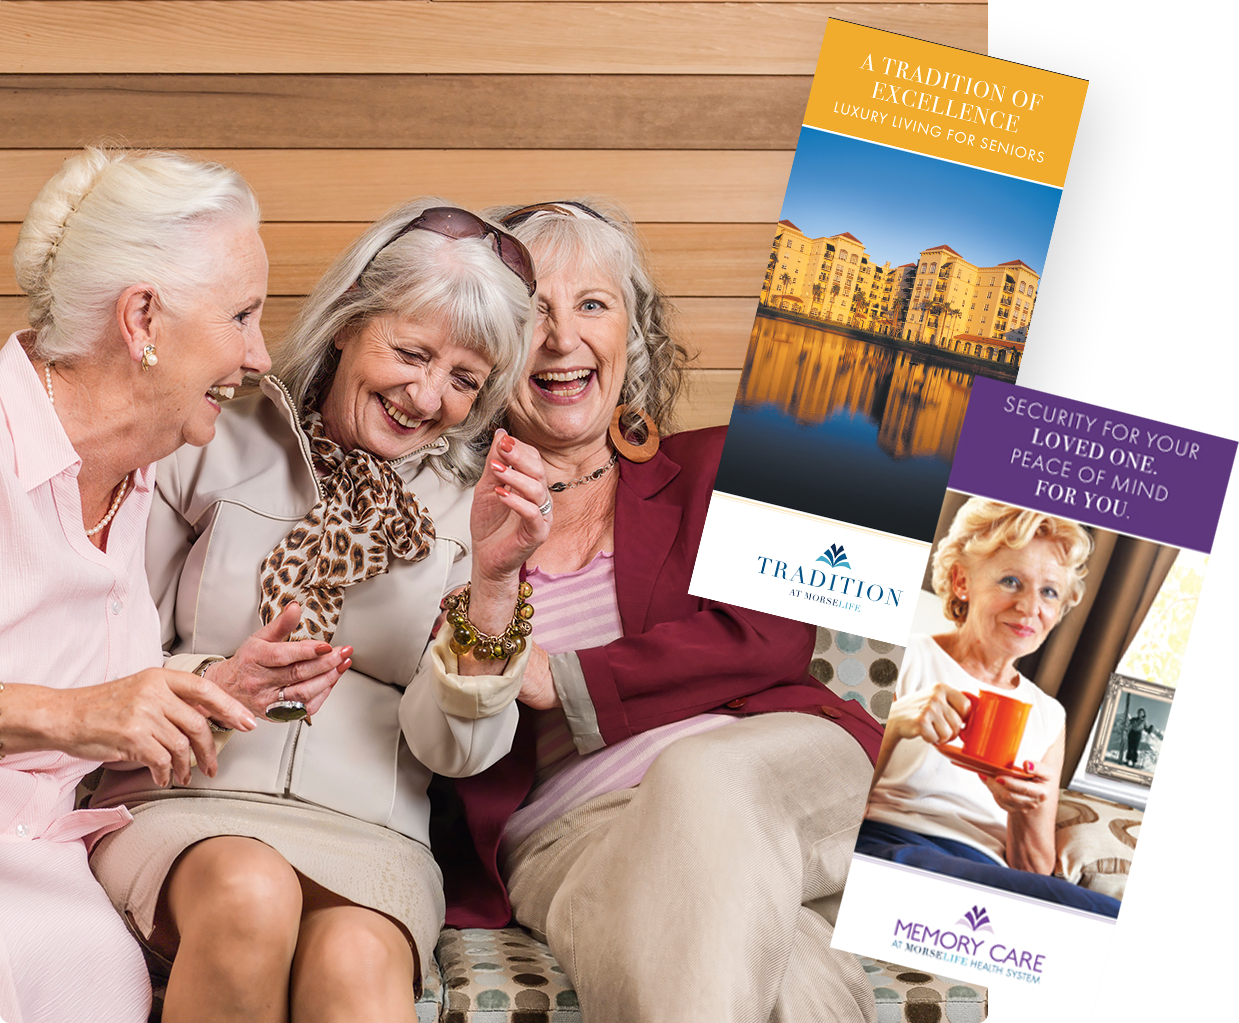 Assisted Living and Memory Care brochures over three senior ladies having fun enjoying a good laugh